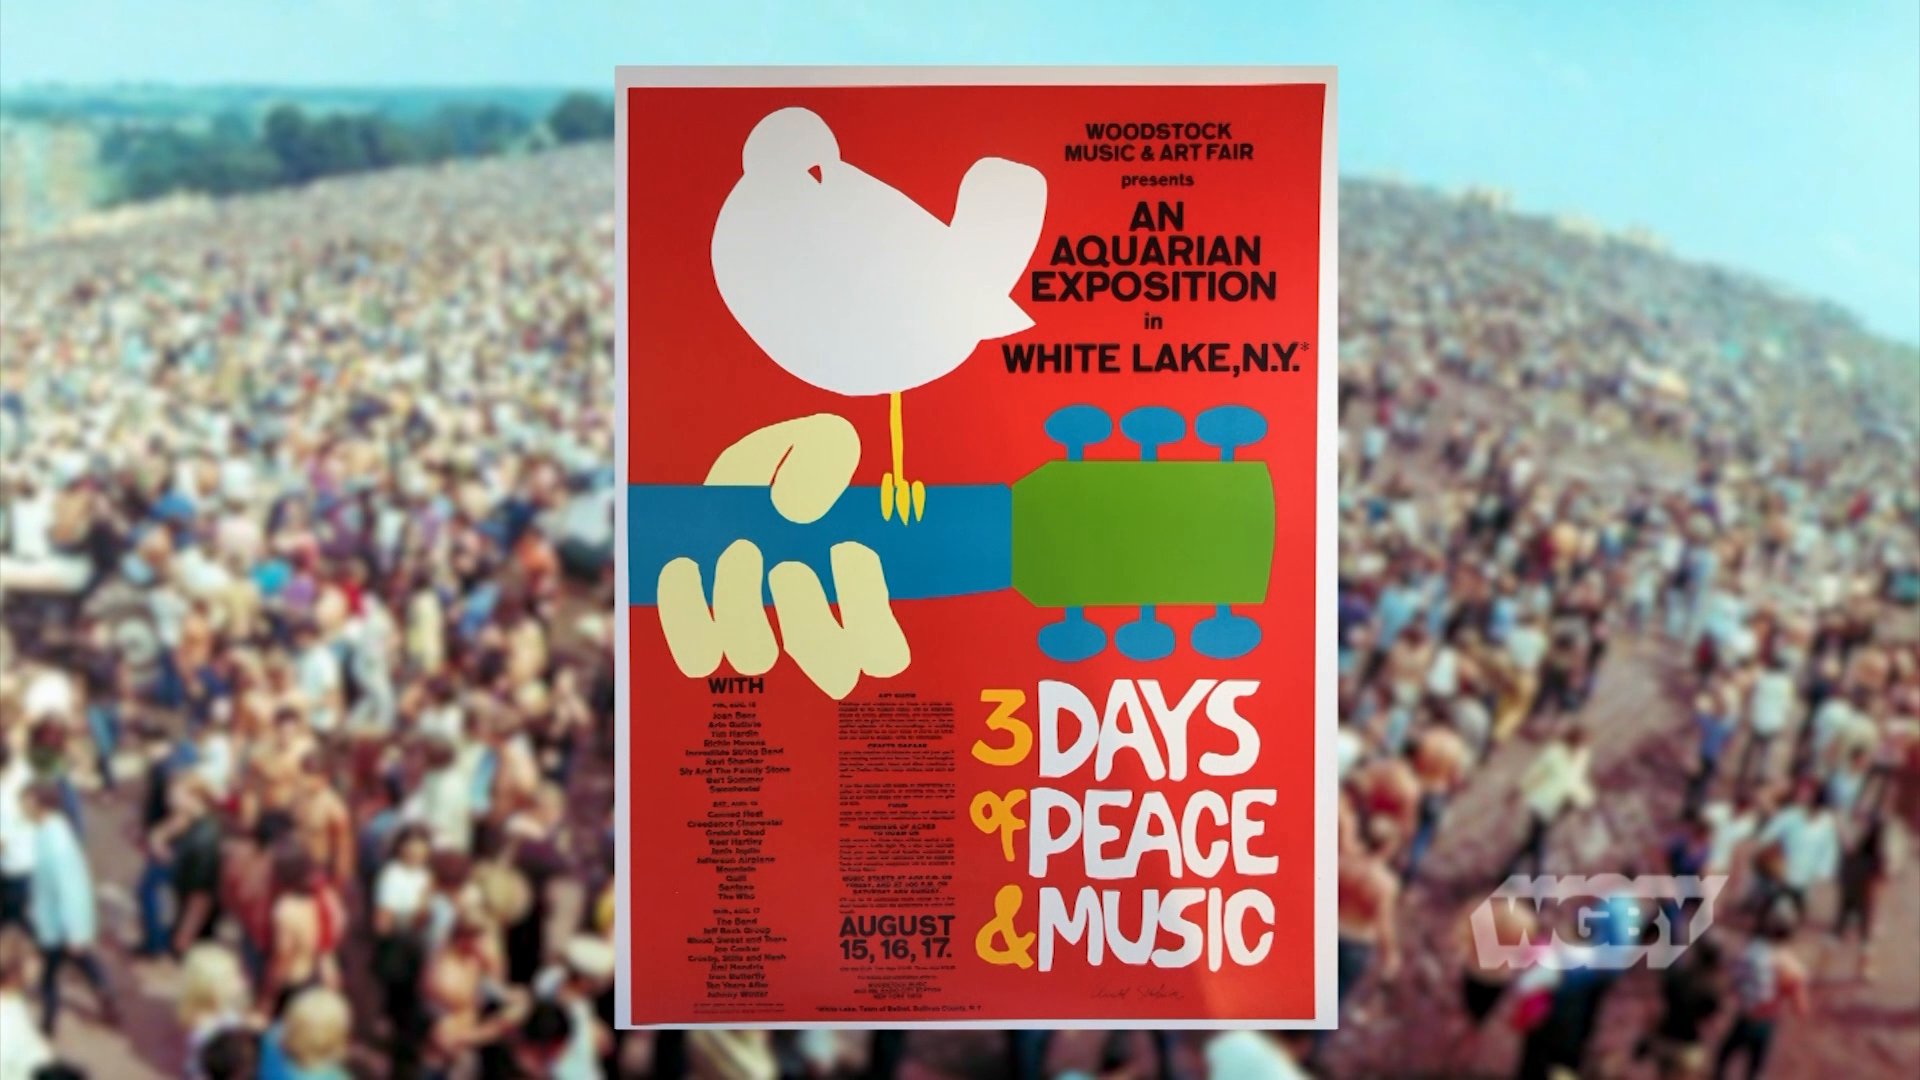 Artist Arnold Skolnick is responsible for an inconic piece of Americana— the Woodstock poster with a bird sitting on the neck of a guitar.